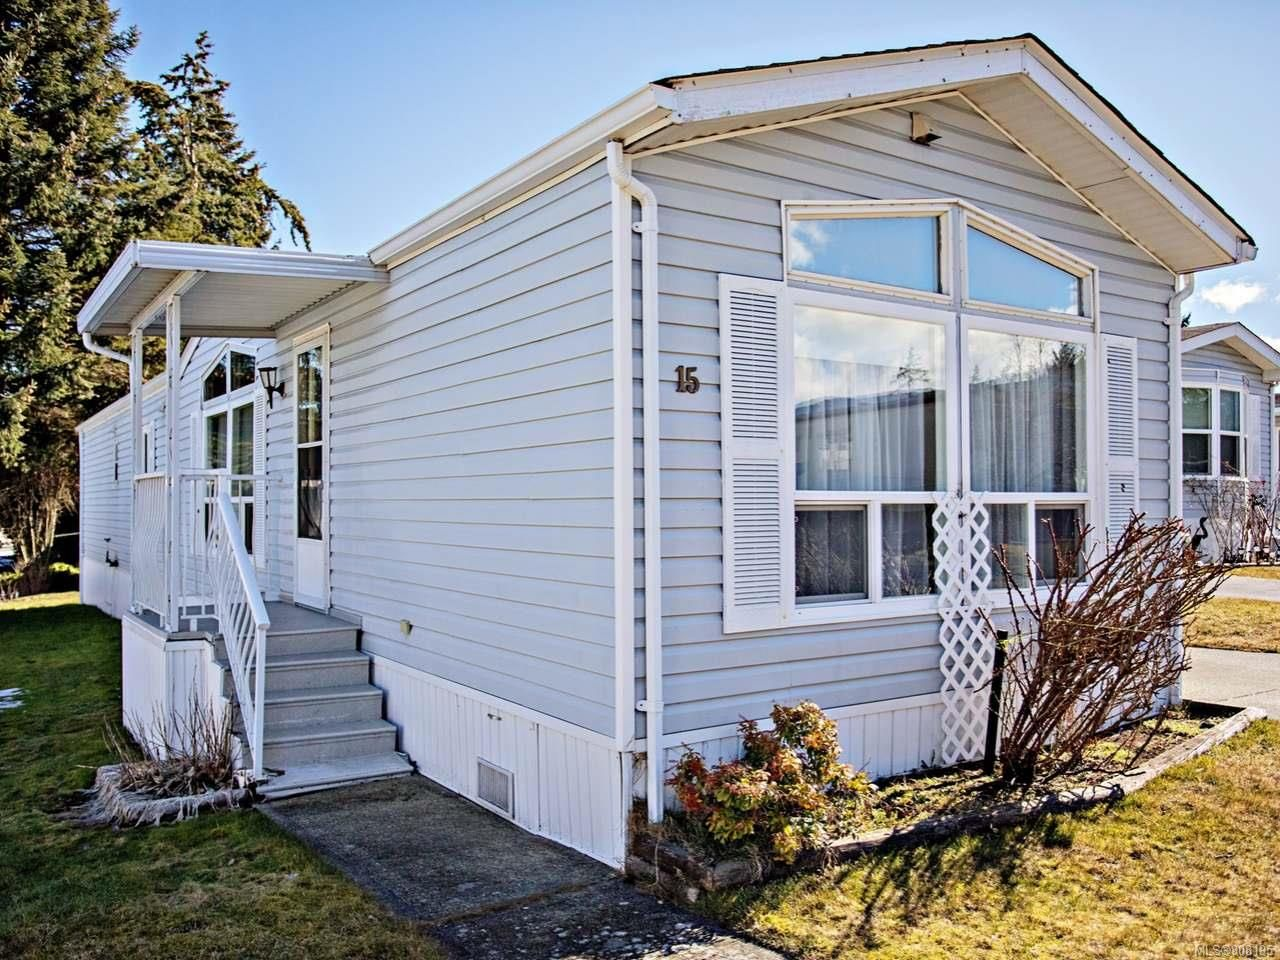 Main Photo: 15 2501 Labieux Rd in : Na Diver Lake Manufactured Home for sale (Nanaimo)  : MLS®# 808195